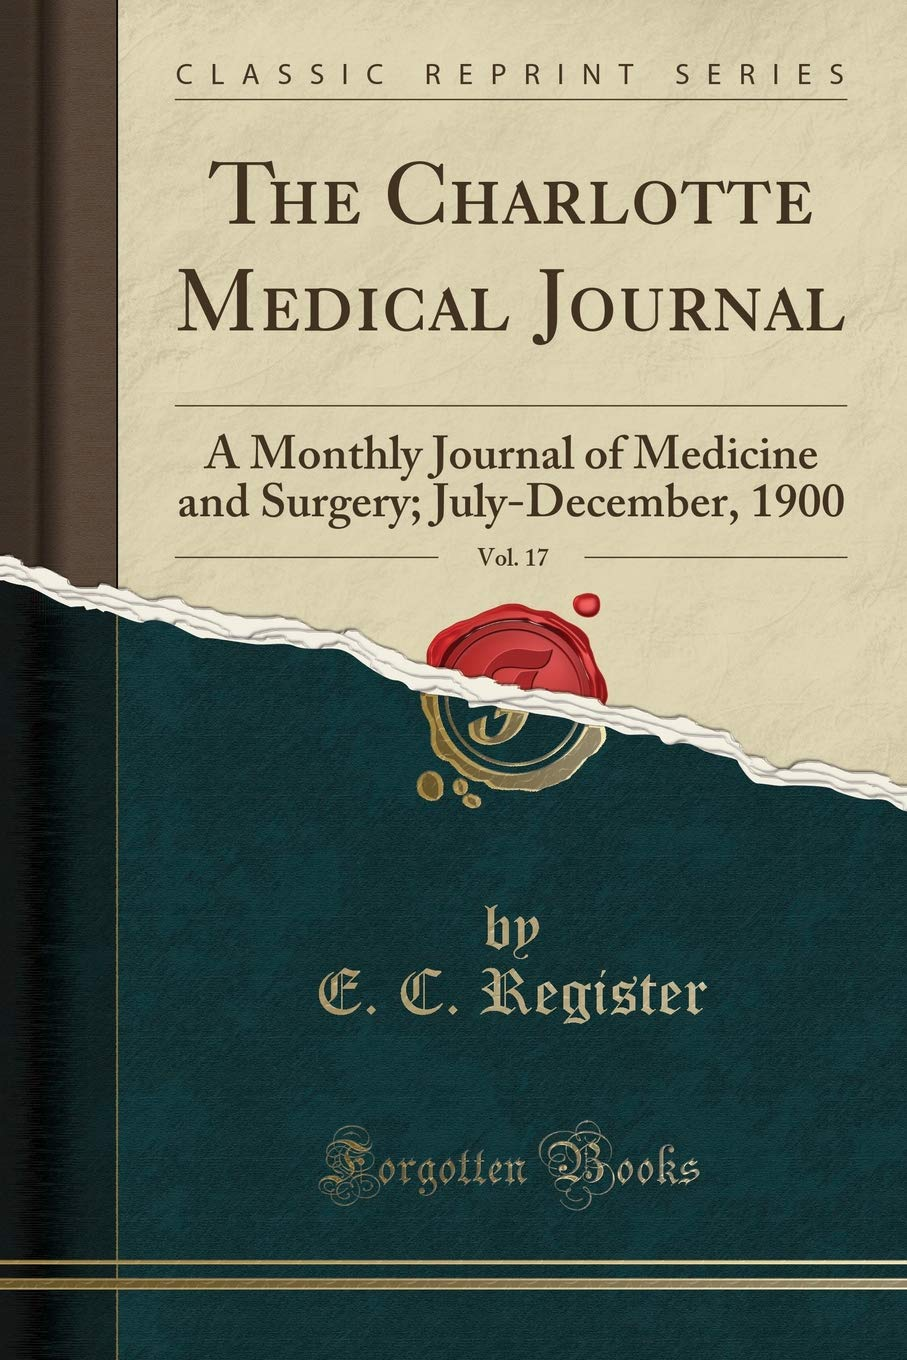 The Charlotte Medical Journal, Vol. 17: A Monthly Journal of Medicine and Surgery; July-December, 1900 (Classic Reprint) ebook